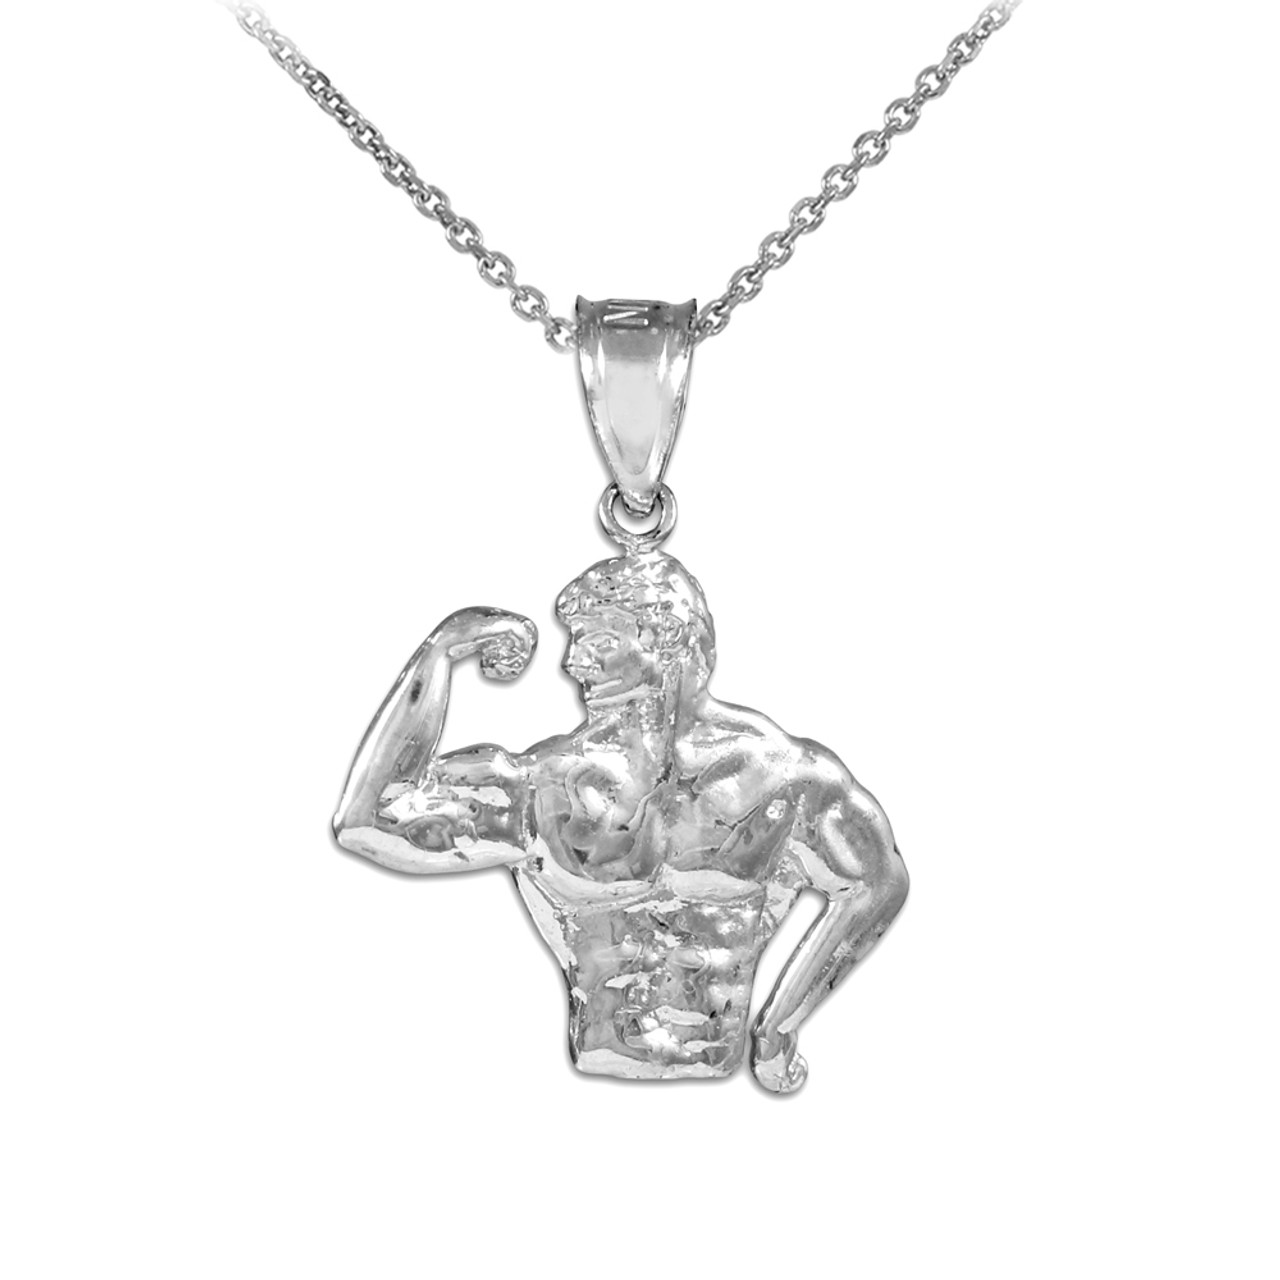 14k White Gold Boxing Glove Charm Sports Pendant Necklace